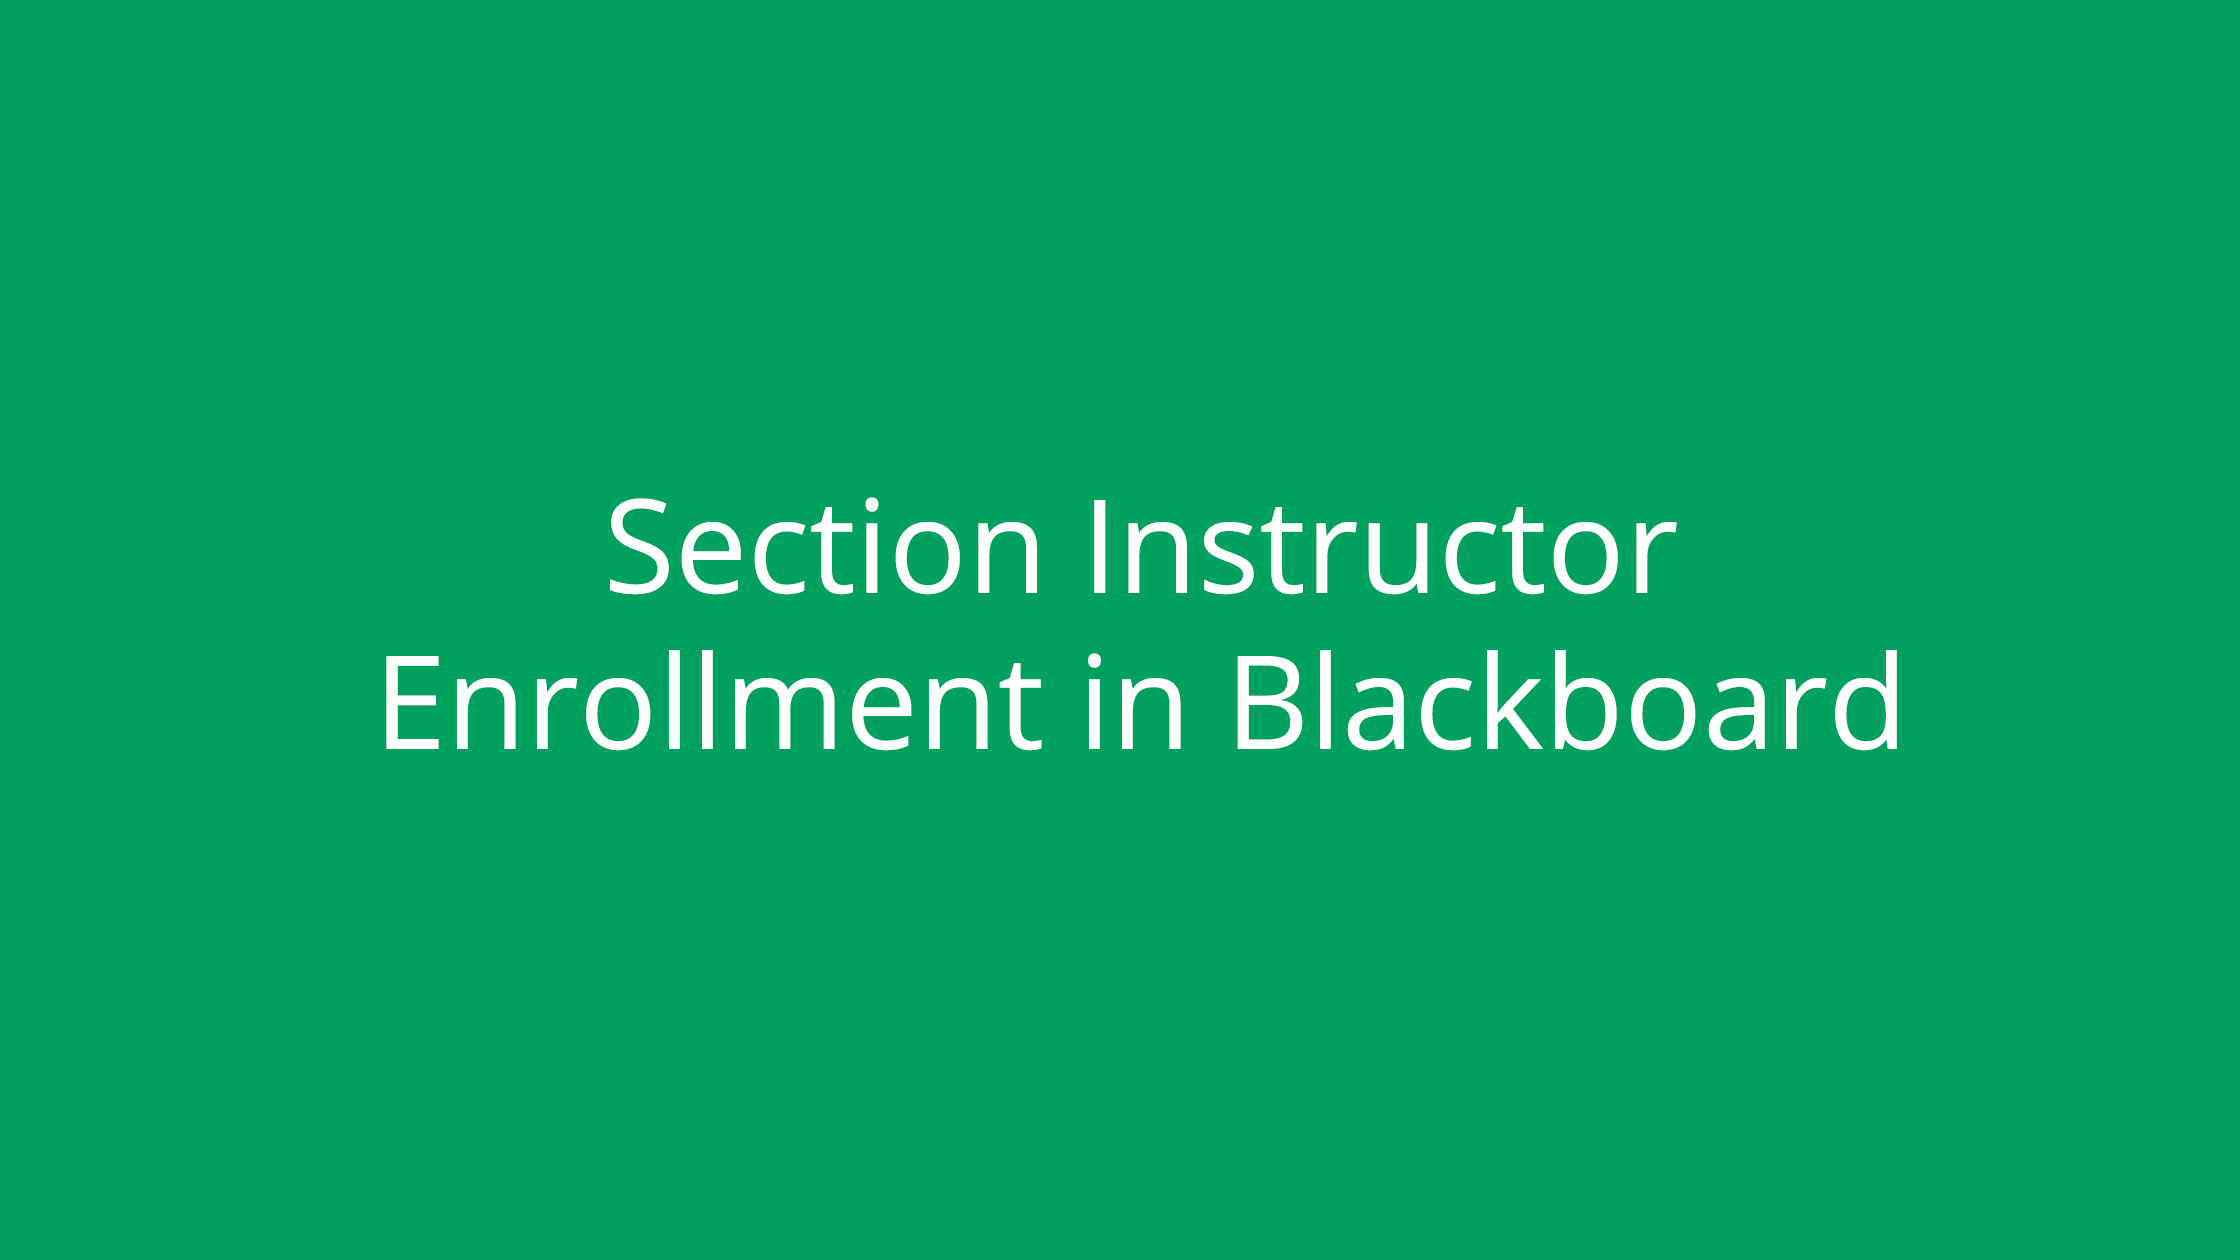 Section Instructor Enrollment in Blackboard